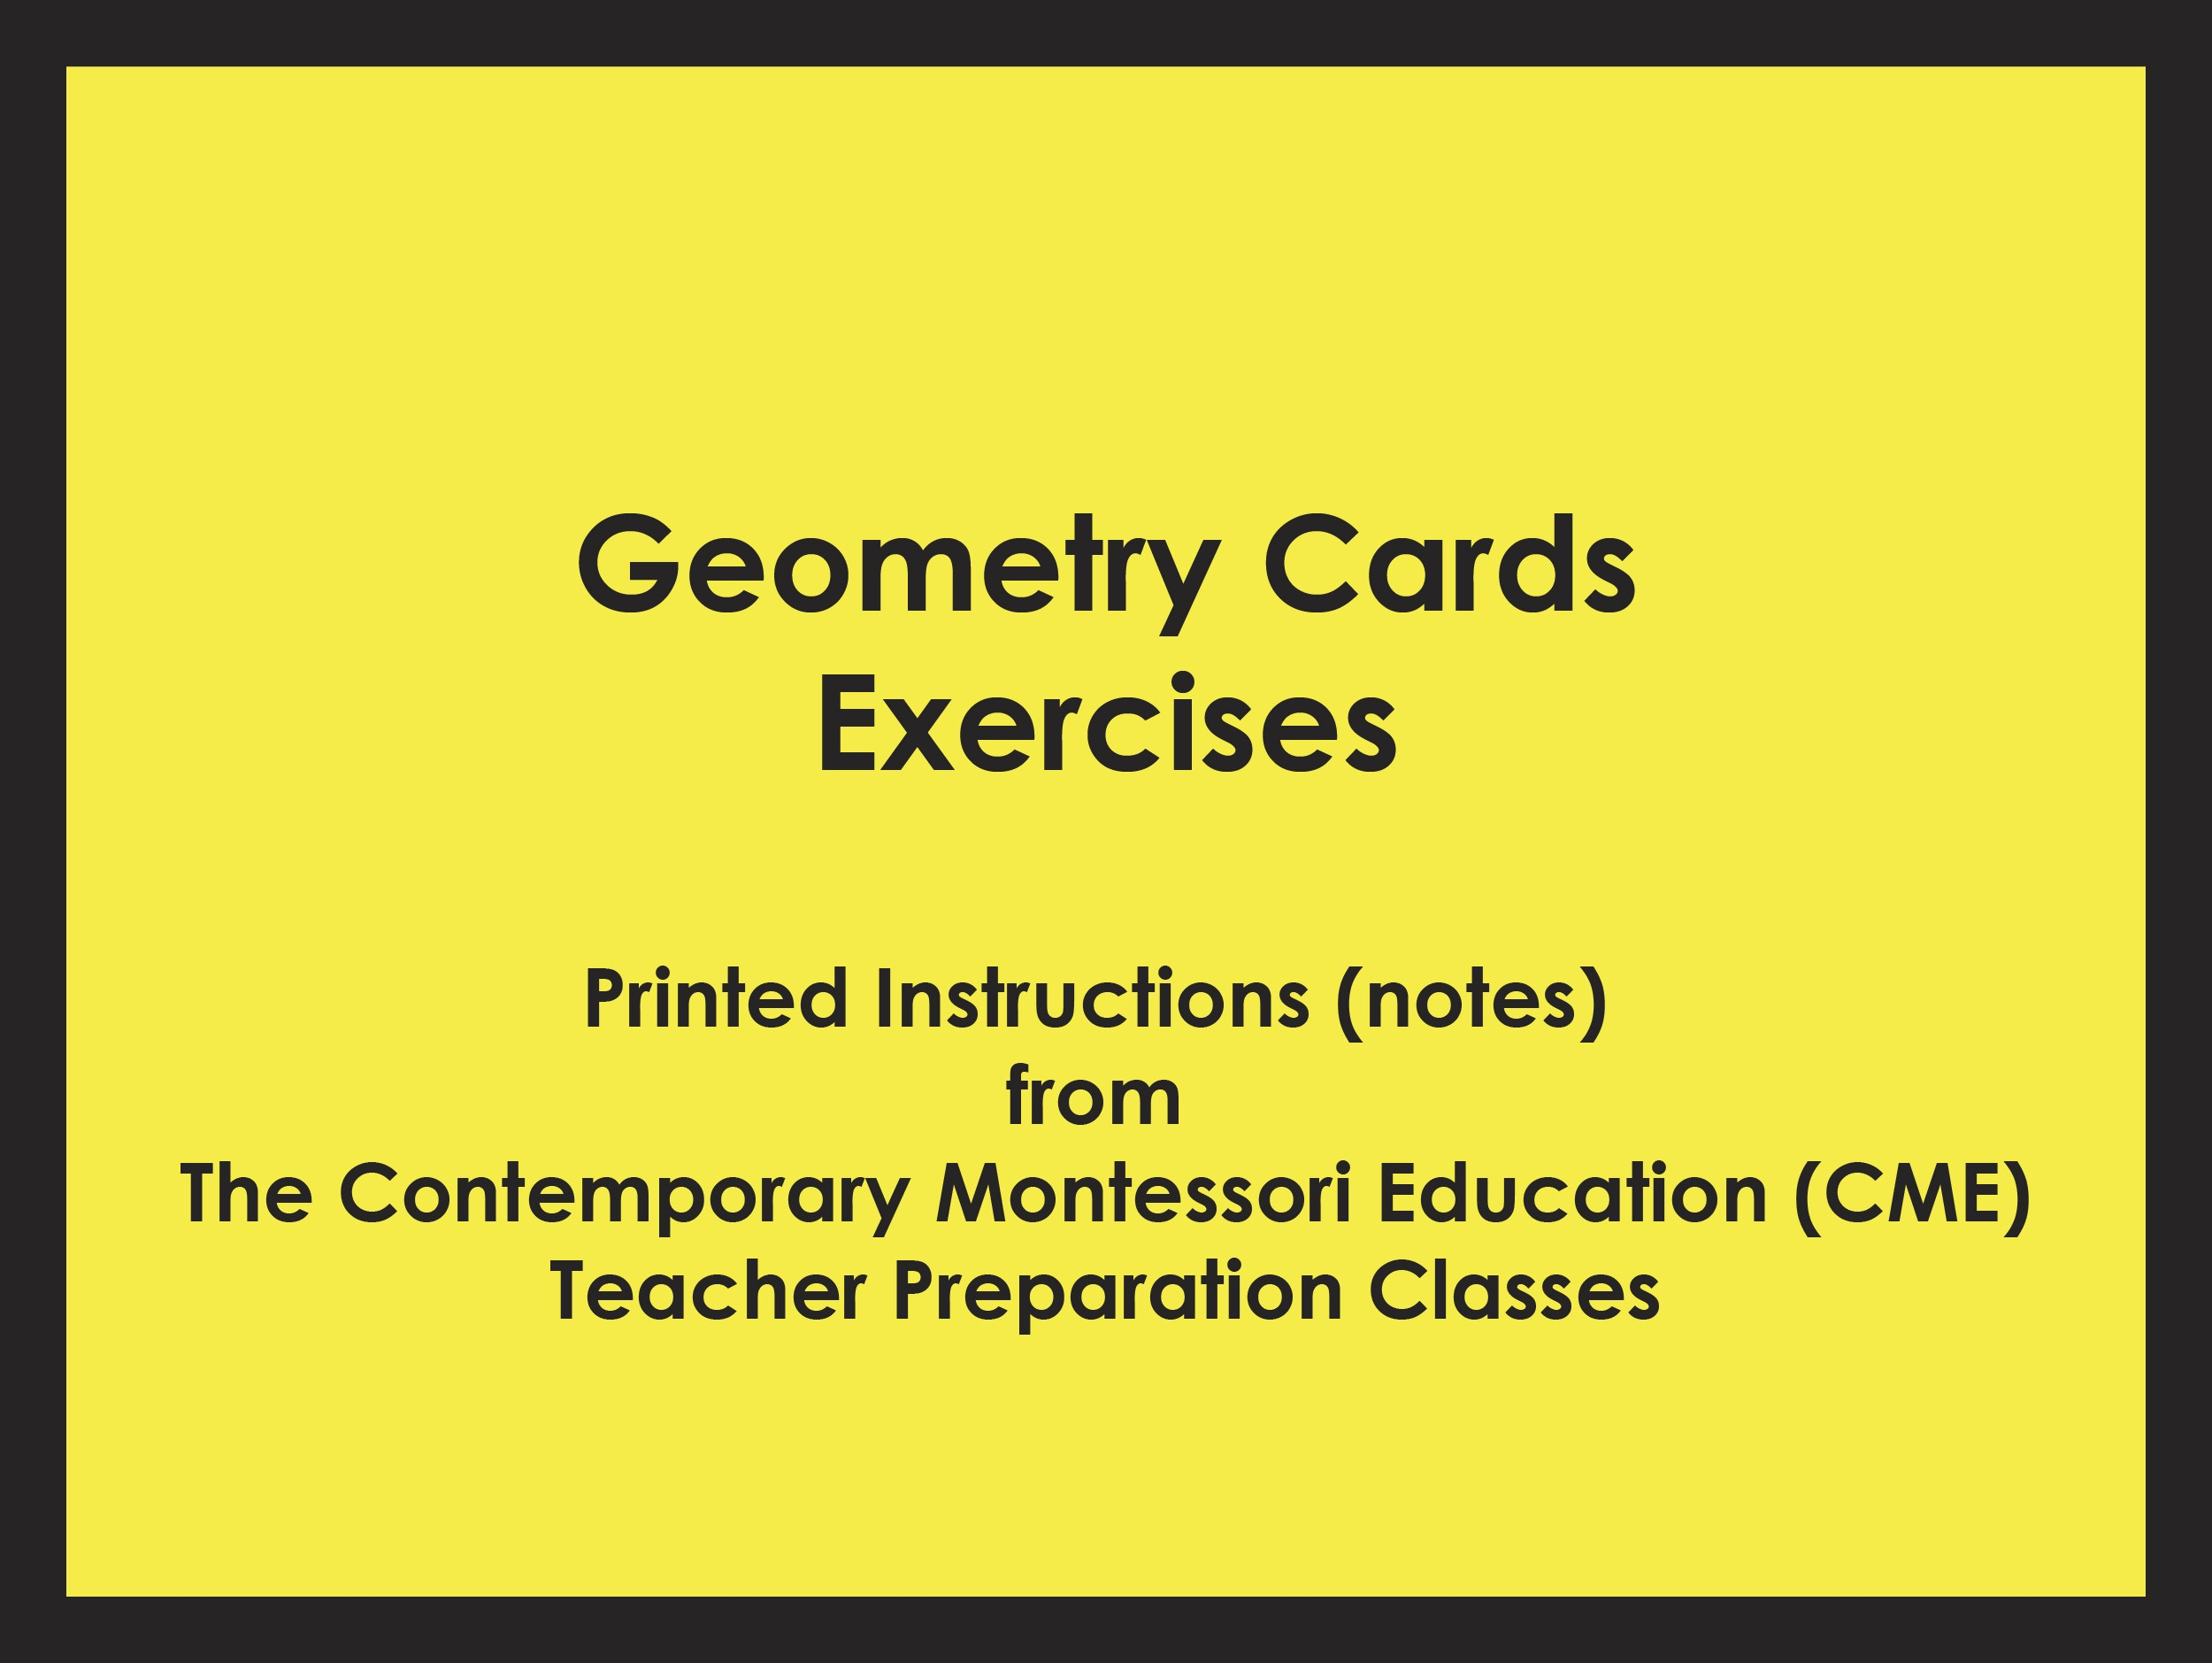 Geometry Cards Exercises (CME notes) ● SENS-CME-029